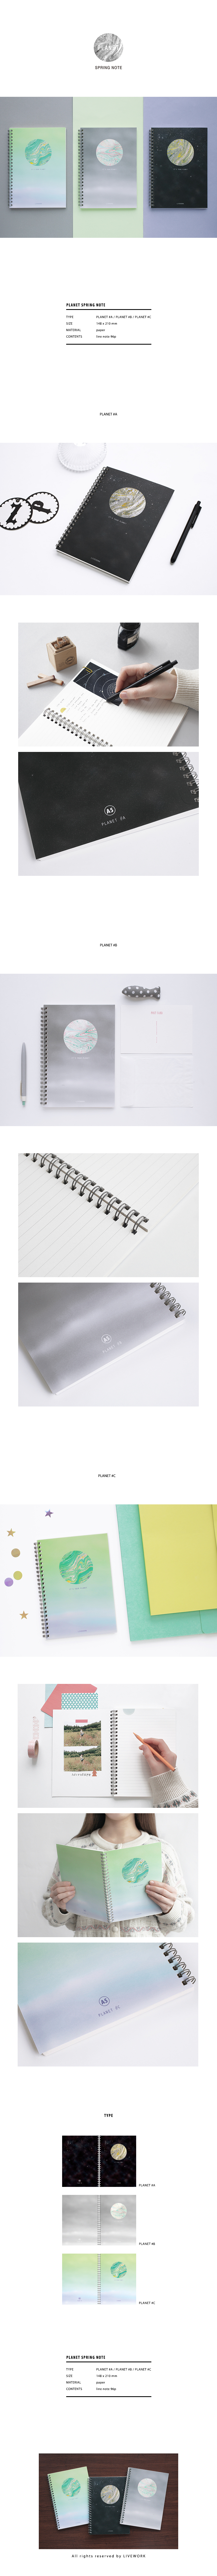 planet eco notebook [planet notebook, eco notebook, recycled notebook]